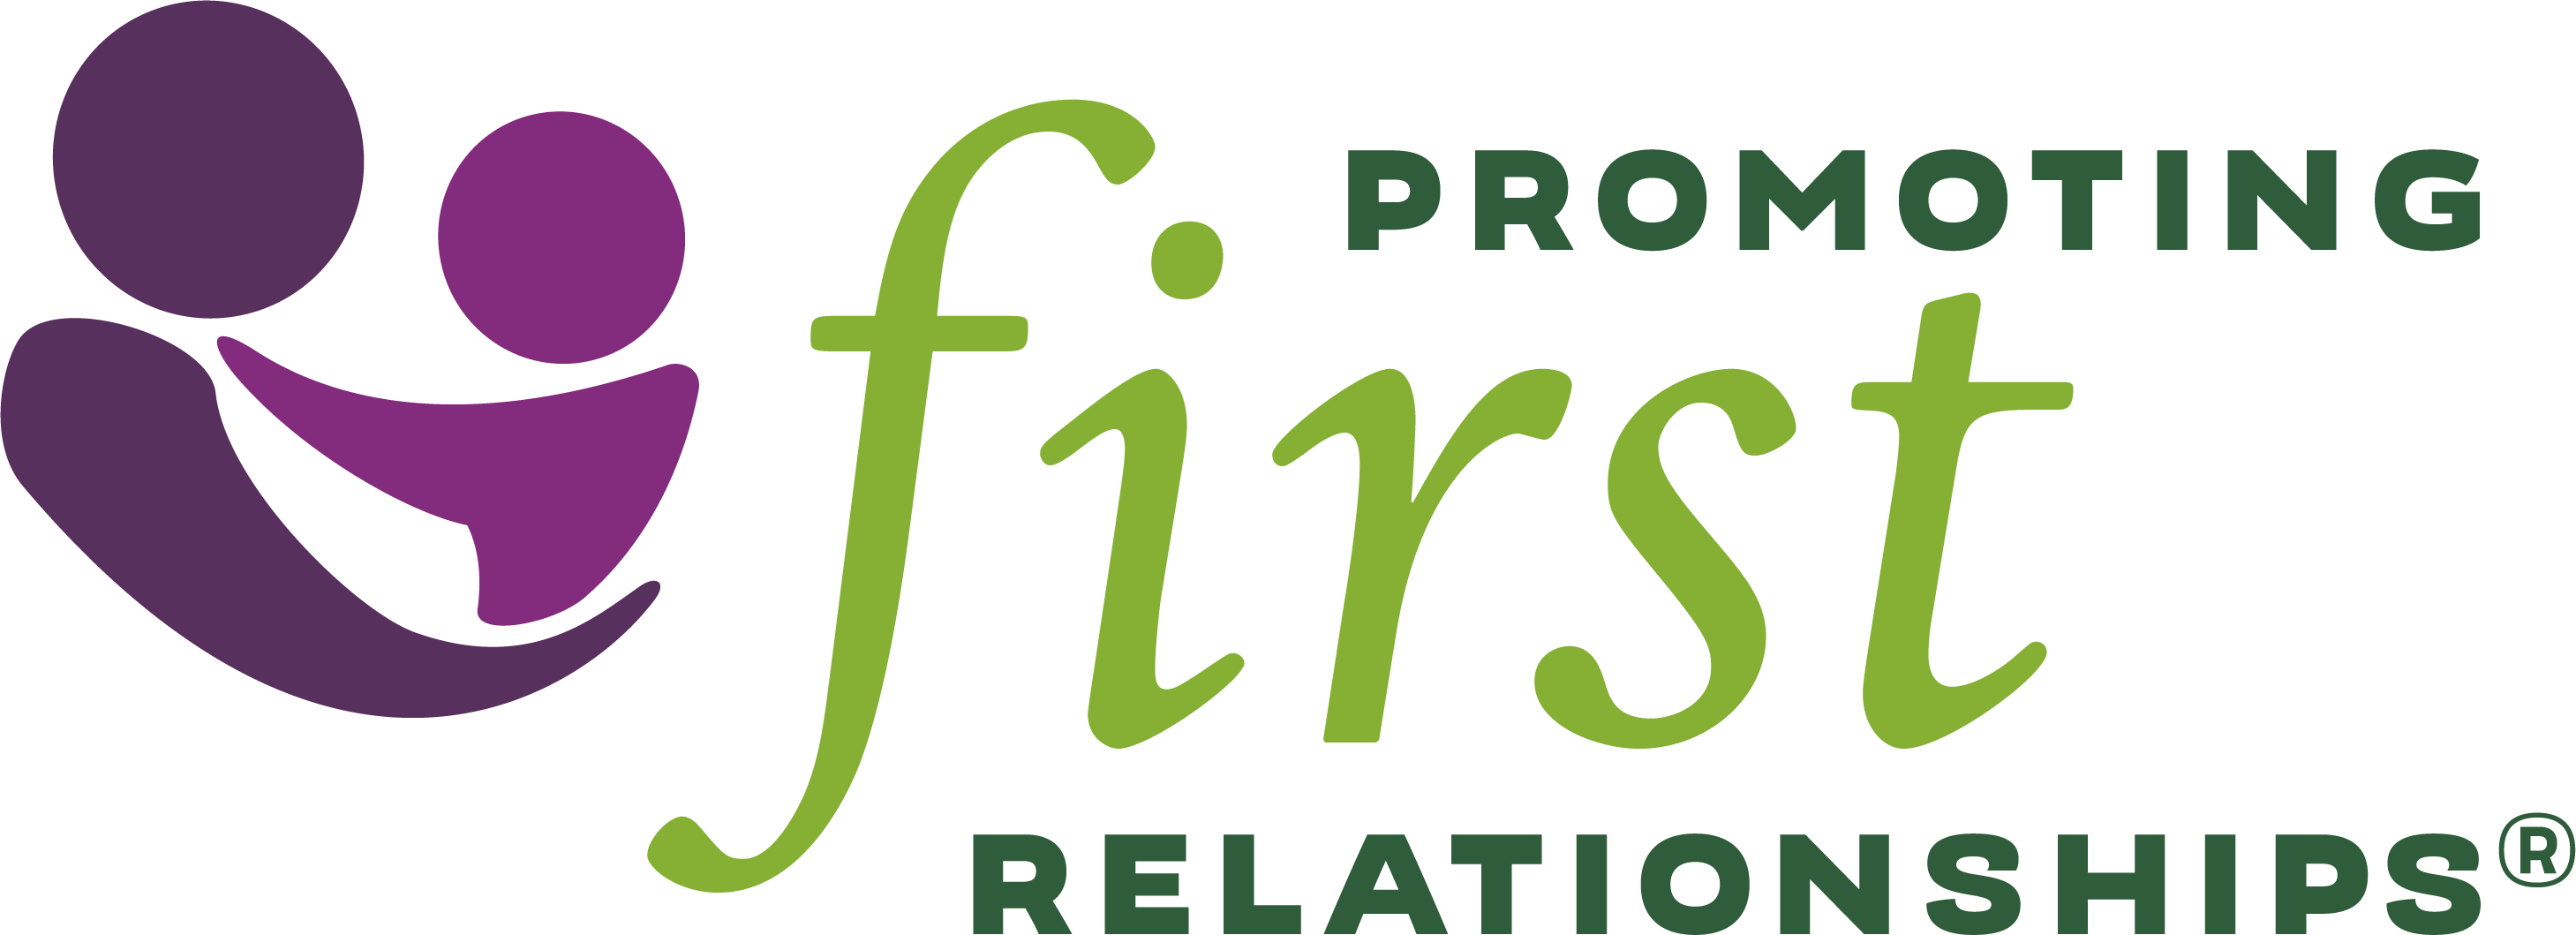 Promoting First Relationships